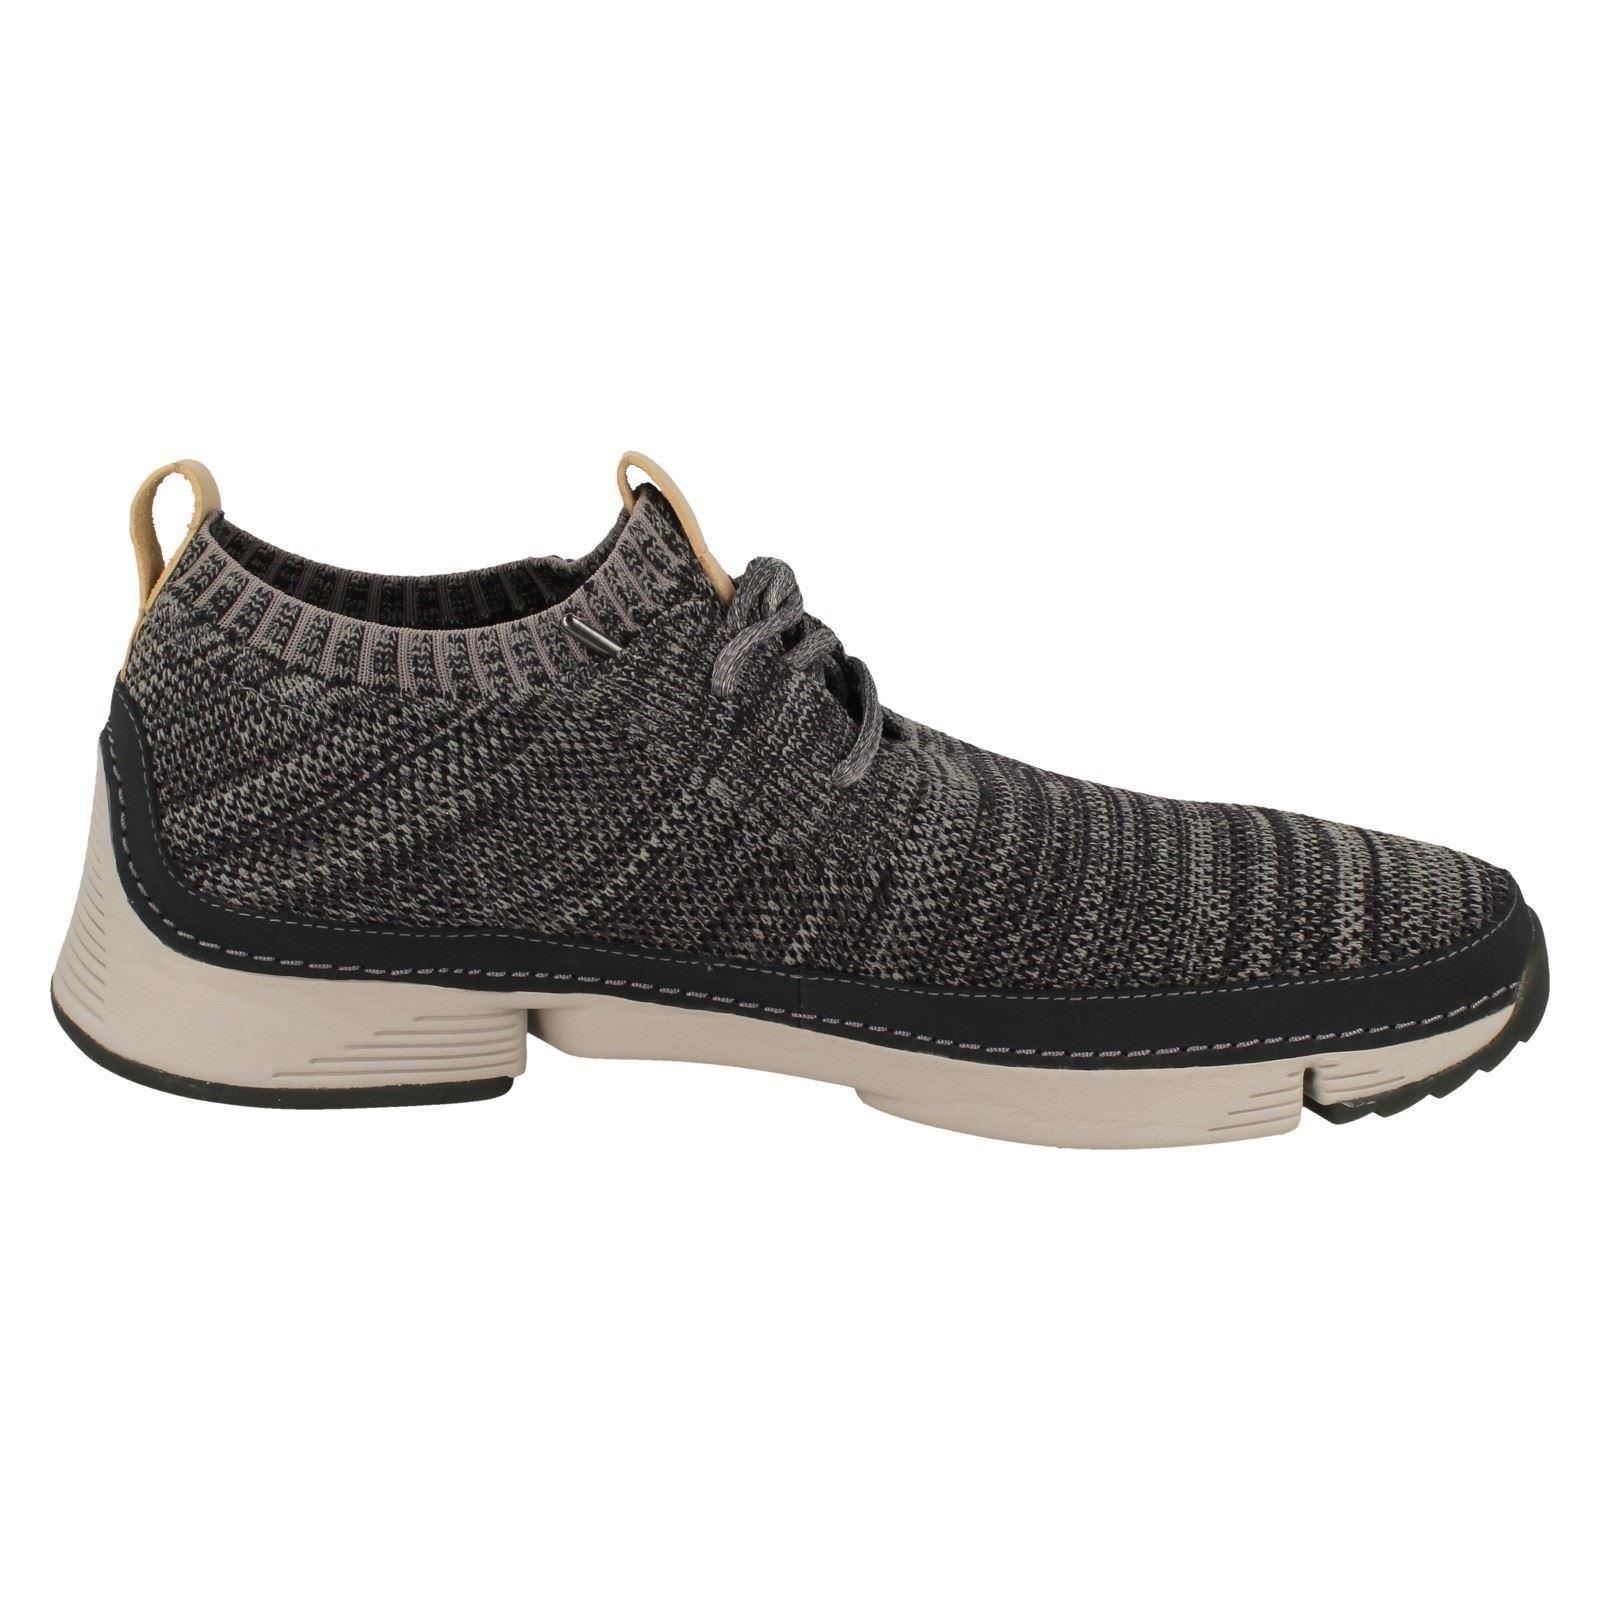 Mens-Clarks-Casual-Lace-Up-Trainers-Tri-Native thumbnail 6